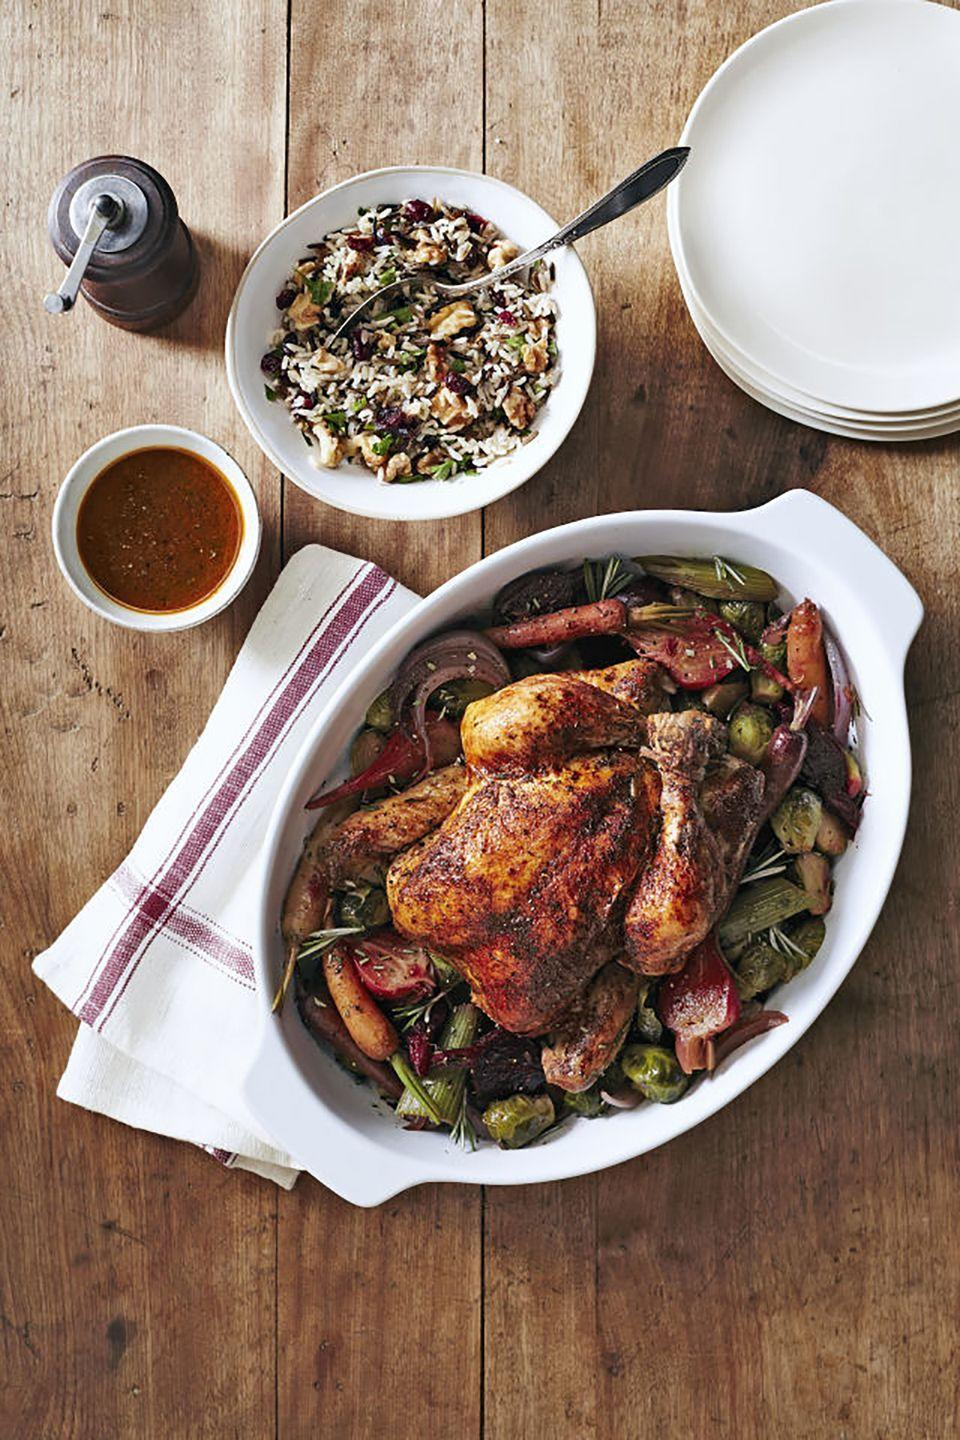 "<p>This chicken recipe will also work great with a smaller, 8-9 pound turkey. If you like crispy skin, you can just broil it for 10-15 minutes in the oven right at the end.</p><p><strong><a href=""https://www.countryliving.com/food-drinks/recipes/a5689/herbed-chicken-beets-brussels-recipe-clx1014/"" rel=""nofollow noopener"" target=""_blank"" data-ylk=""slk:Get the recipe"" class=""link rapid-noclick-resp"">Get the recipe</a>.</strong><br></p><p><strong><strong><a class=""link rapid-noclick-resp"" href=""https://www.amazon.com/Hamilton-Beach-33195-Extra-Large-Capacity/dp/B07DKXNW2M/?tag=syn-yahoo-20&ascsubtag=%5Bartid%7C10050.g.2756%5Bsrc%7Cyahoo-us"" rel=""nofollow noopener"" target=""_blank"" data-ylk=""slk:SHOP EXTRA LARGE SLOW COOKERS"">SHOP EXTRA LARGE SLOW COOKERS</a></strong><br></strong></p>"